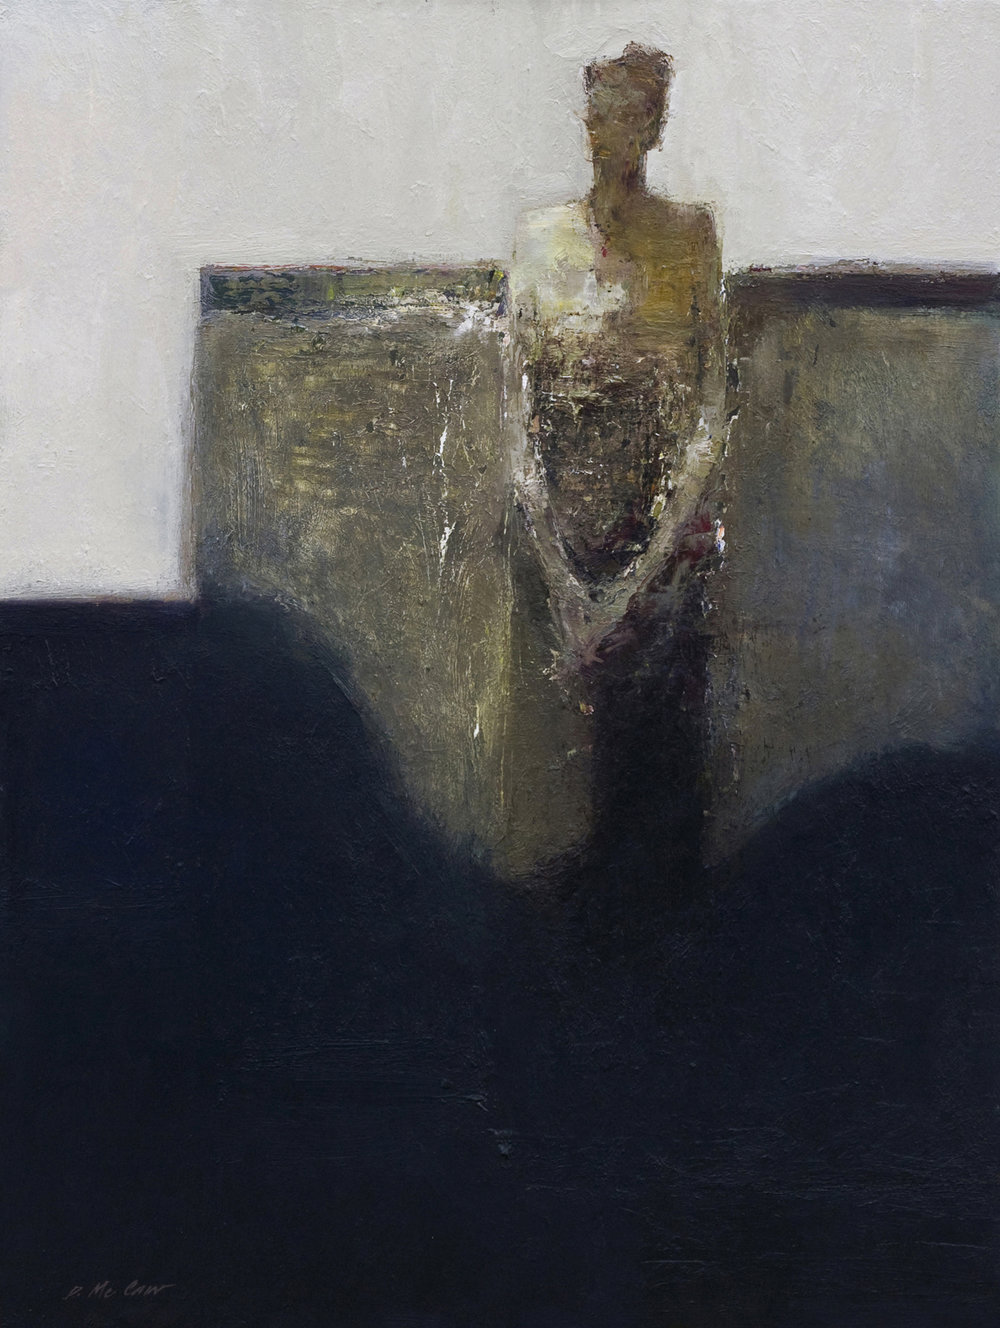 Solitude 40x30 in. Oil on Board